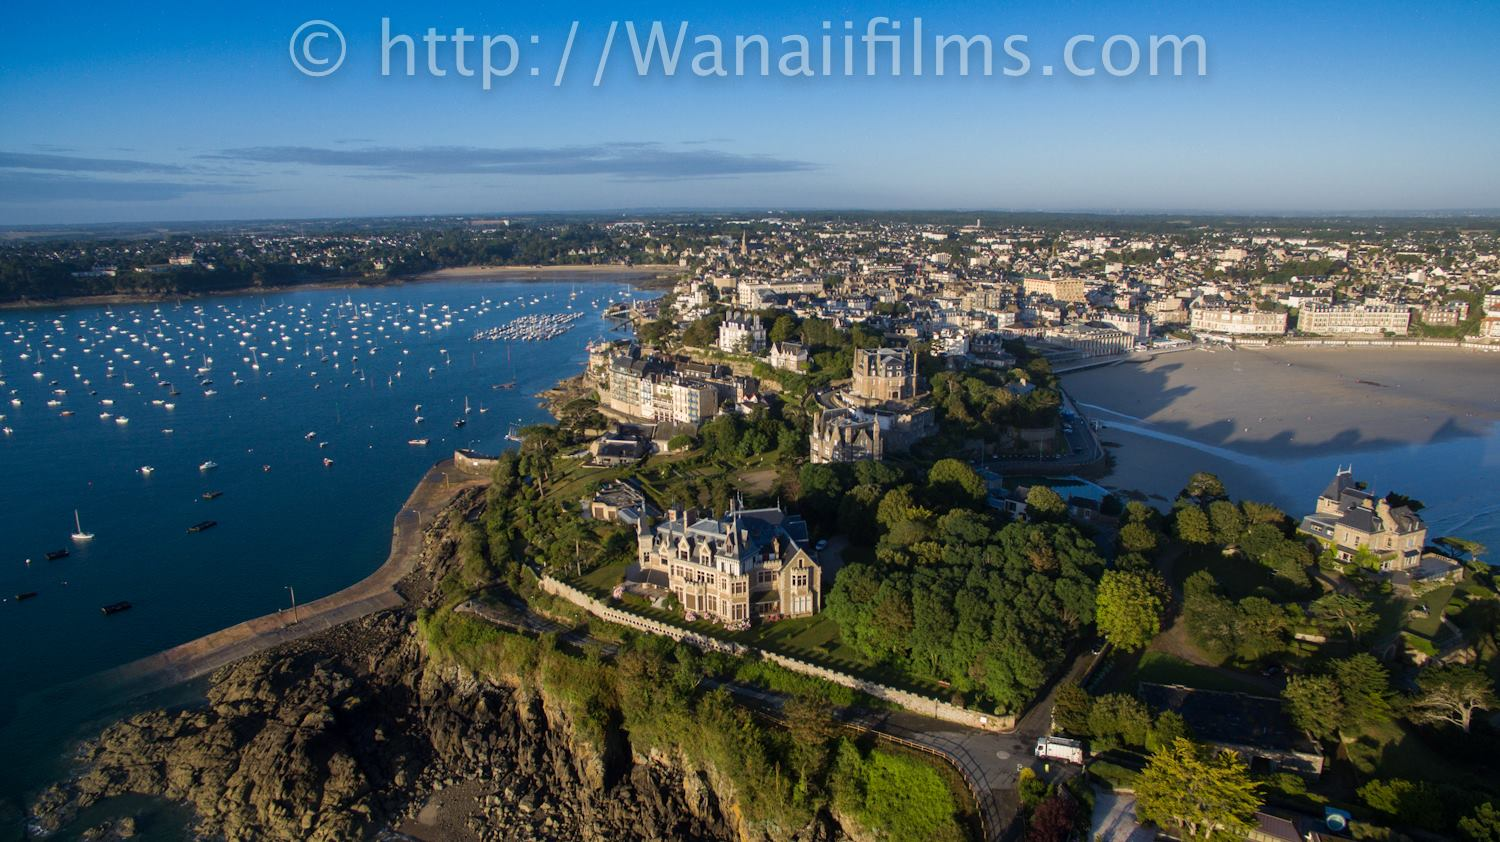 Film Promotionnel Ville de Dinard (35)